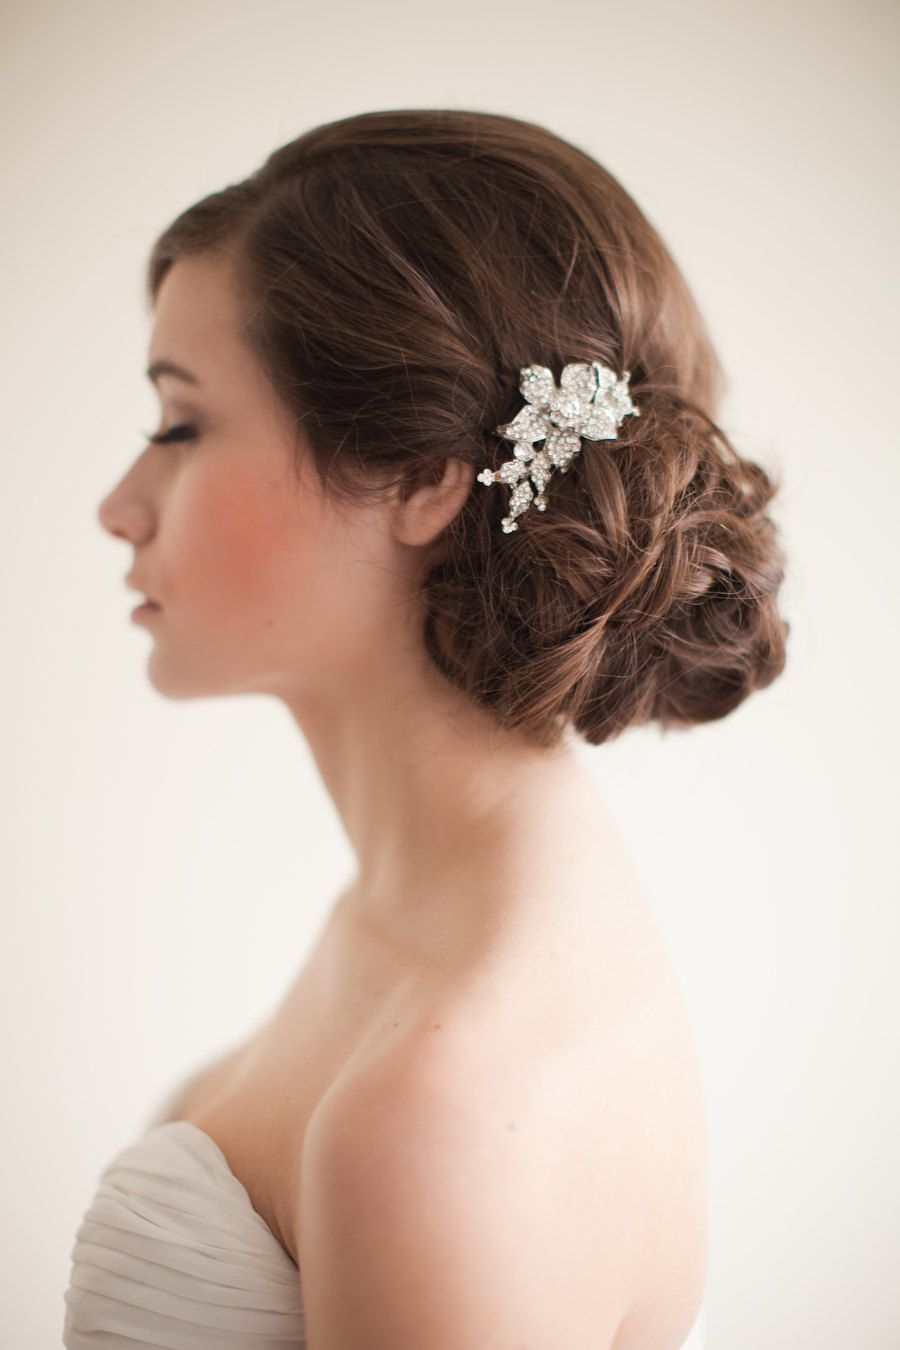 image result for bridal hairstyle with veil and hair comb